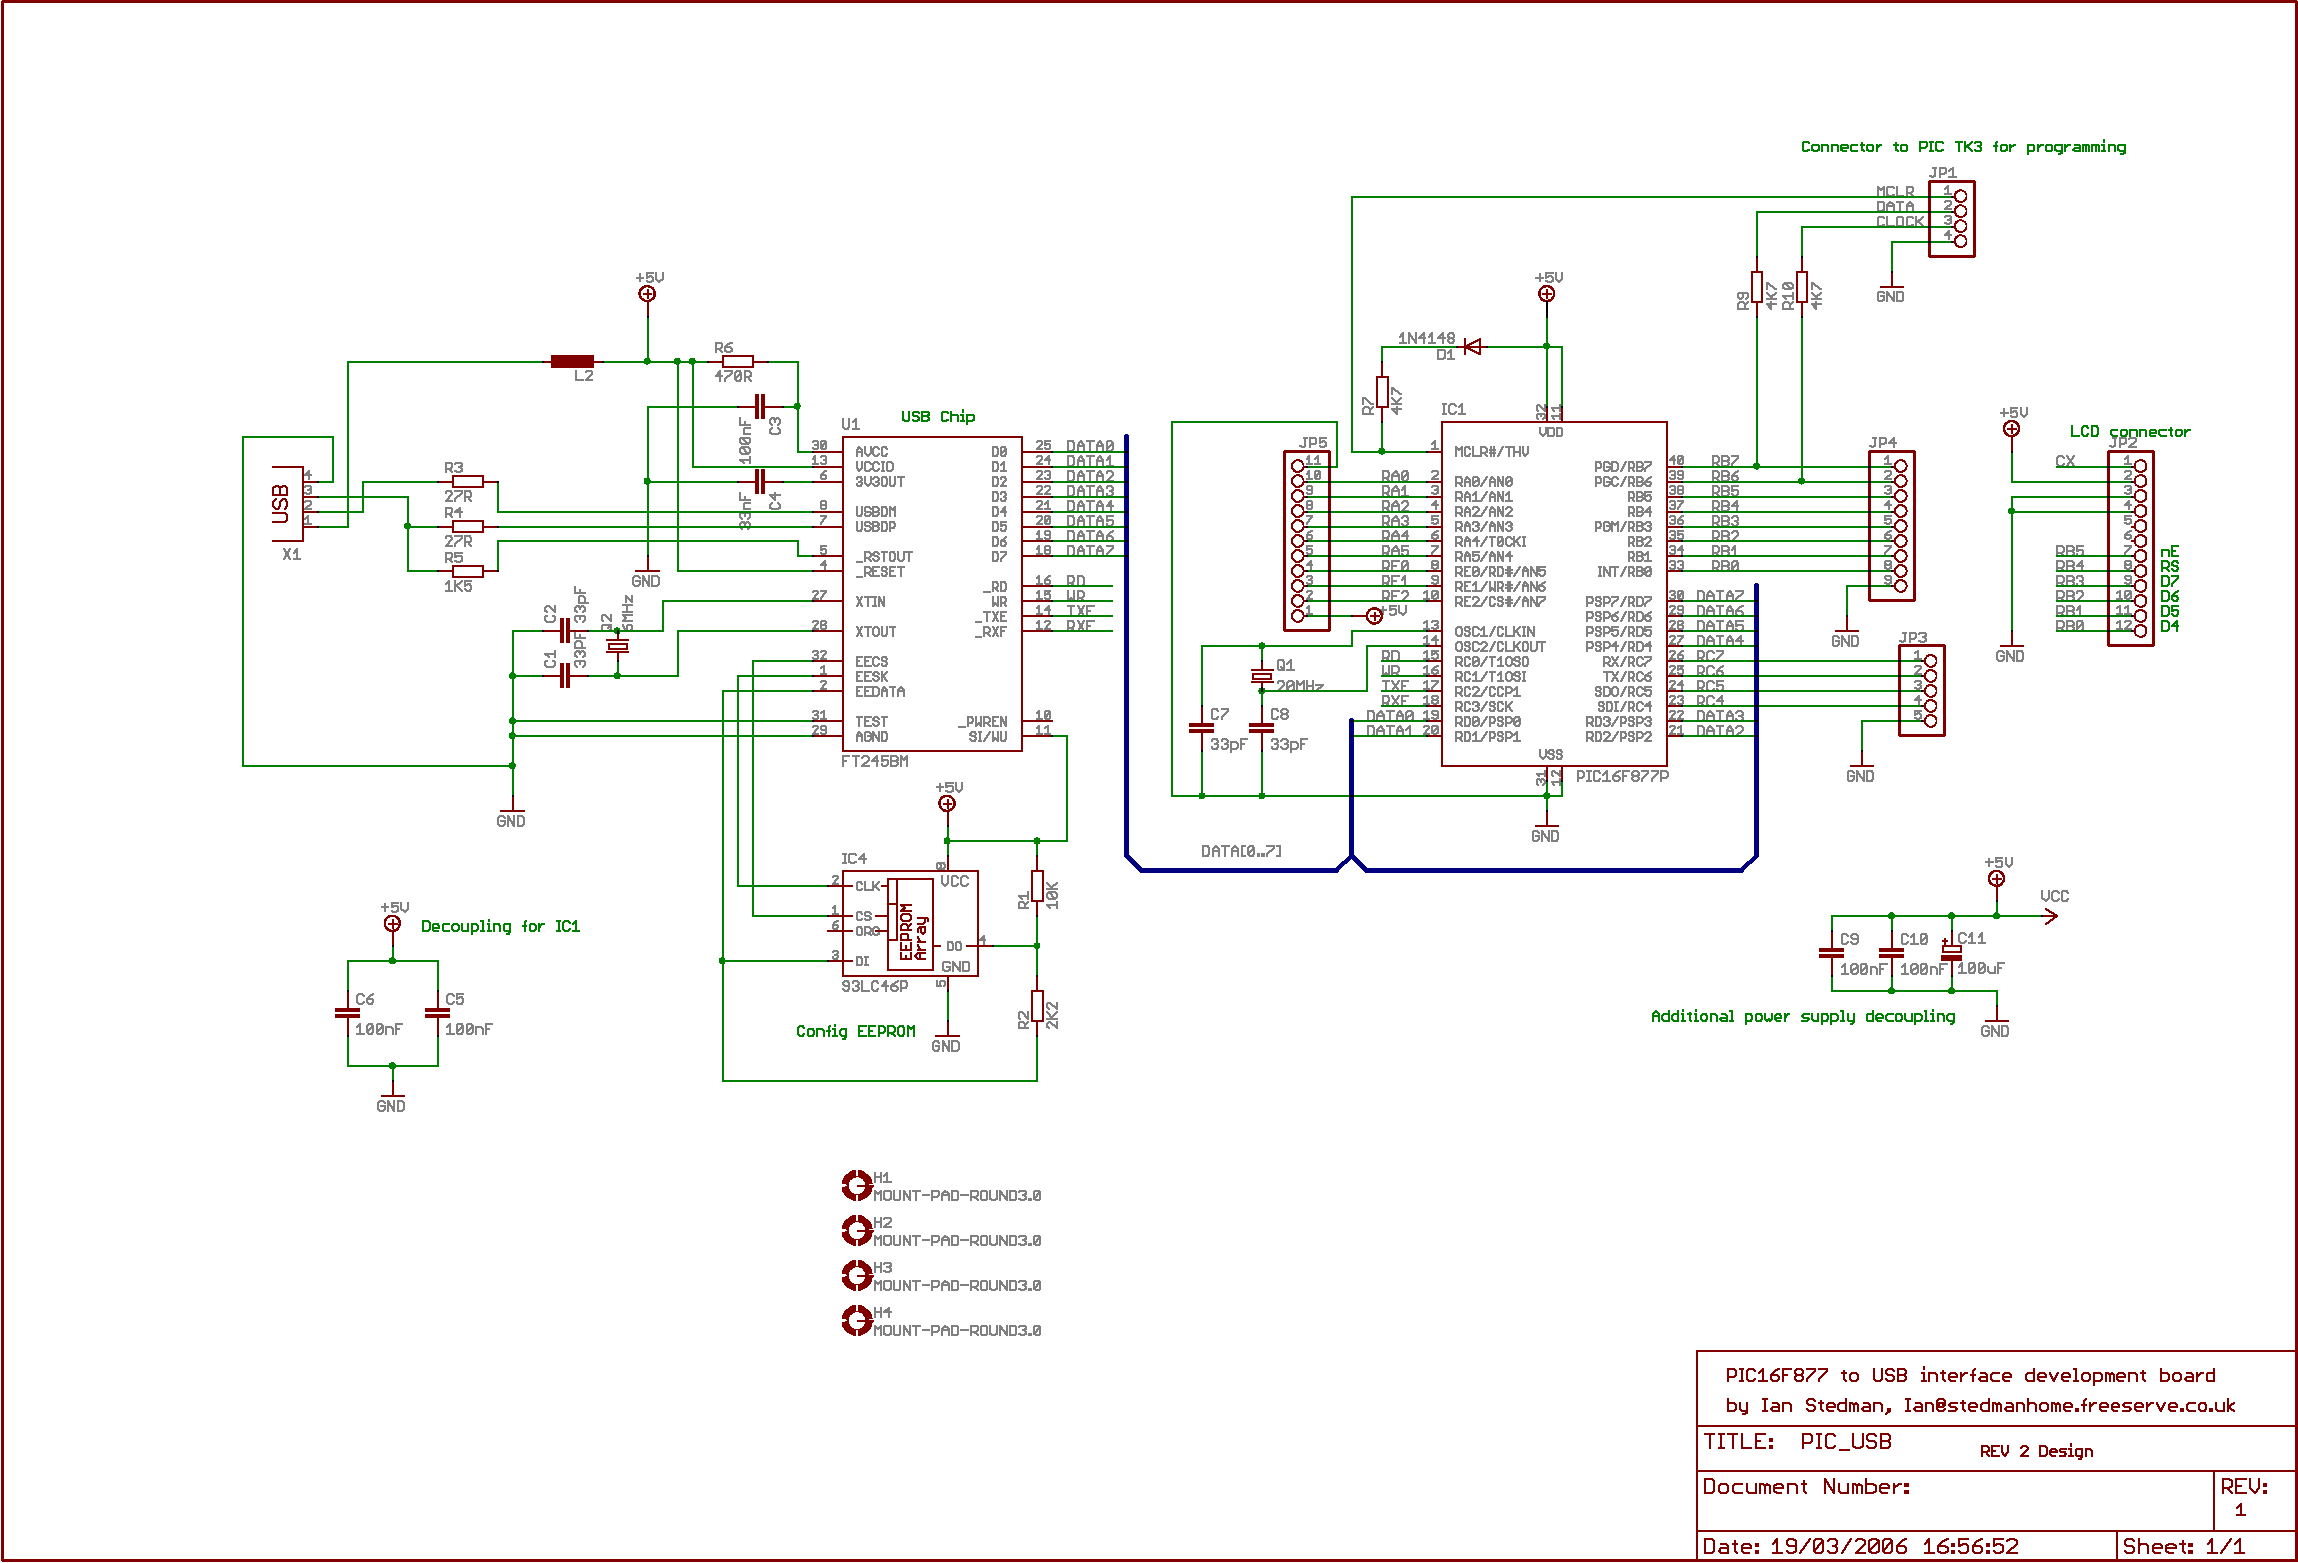 Usb Schematic | Wiring Diagram - Wiring Diagram For Usb Port In Car